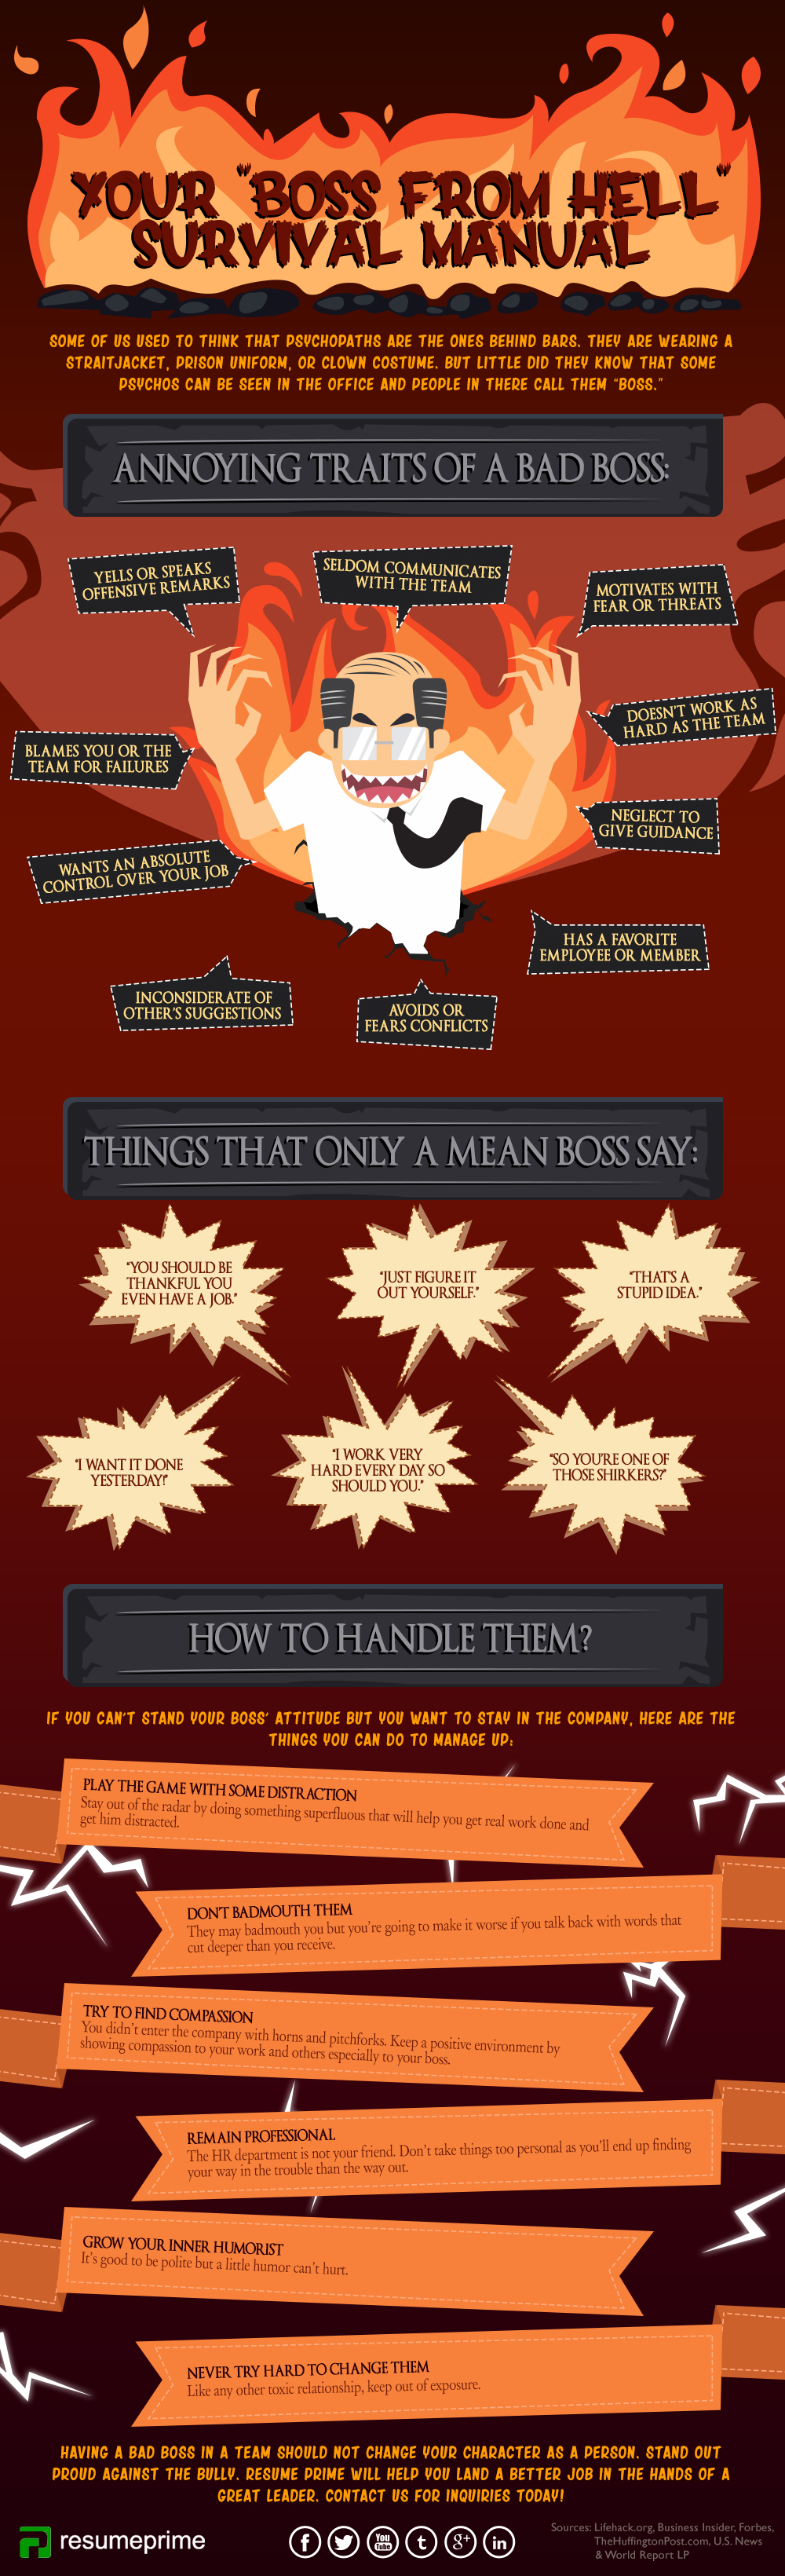 Tips on How to Deal with Your Bad Boss [Infographic]